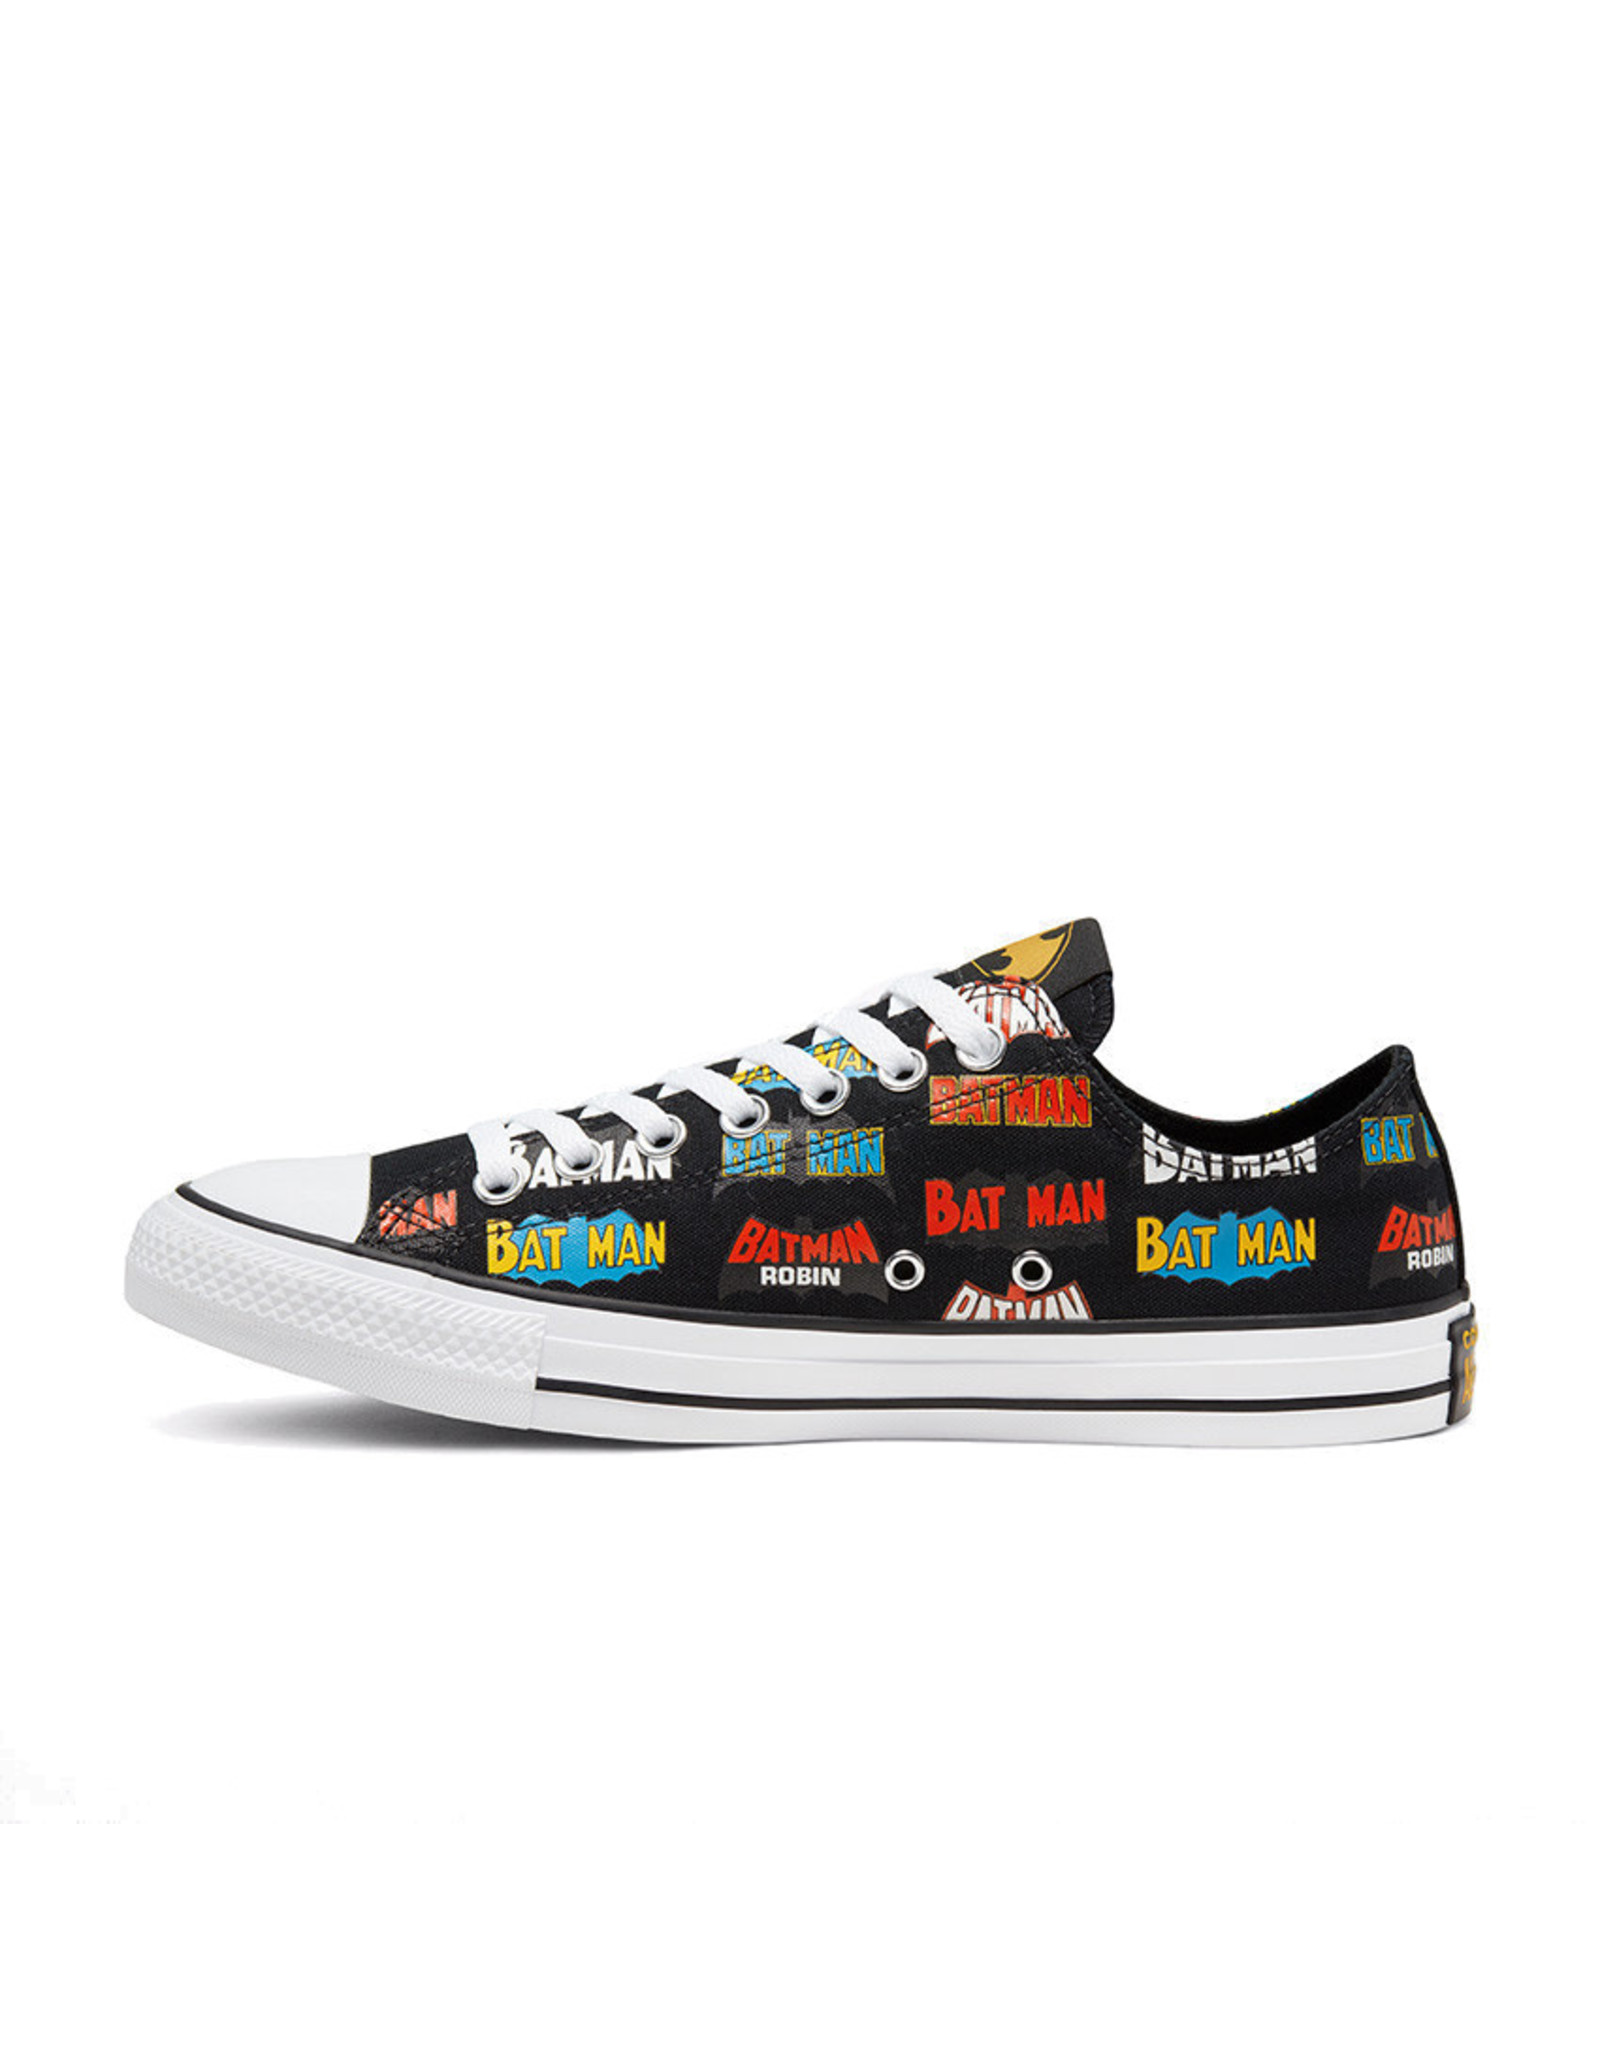 CONVERSE CHUCK TAYLOR ALL STAR OX BATMAN CANEVAS BLACK/WHITE/MULTI C13BATB-167319C